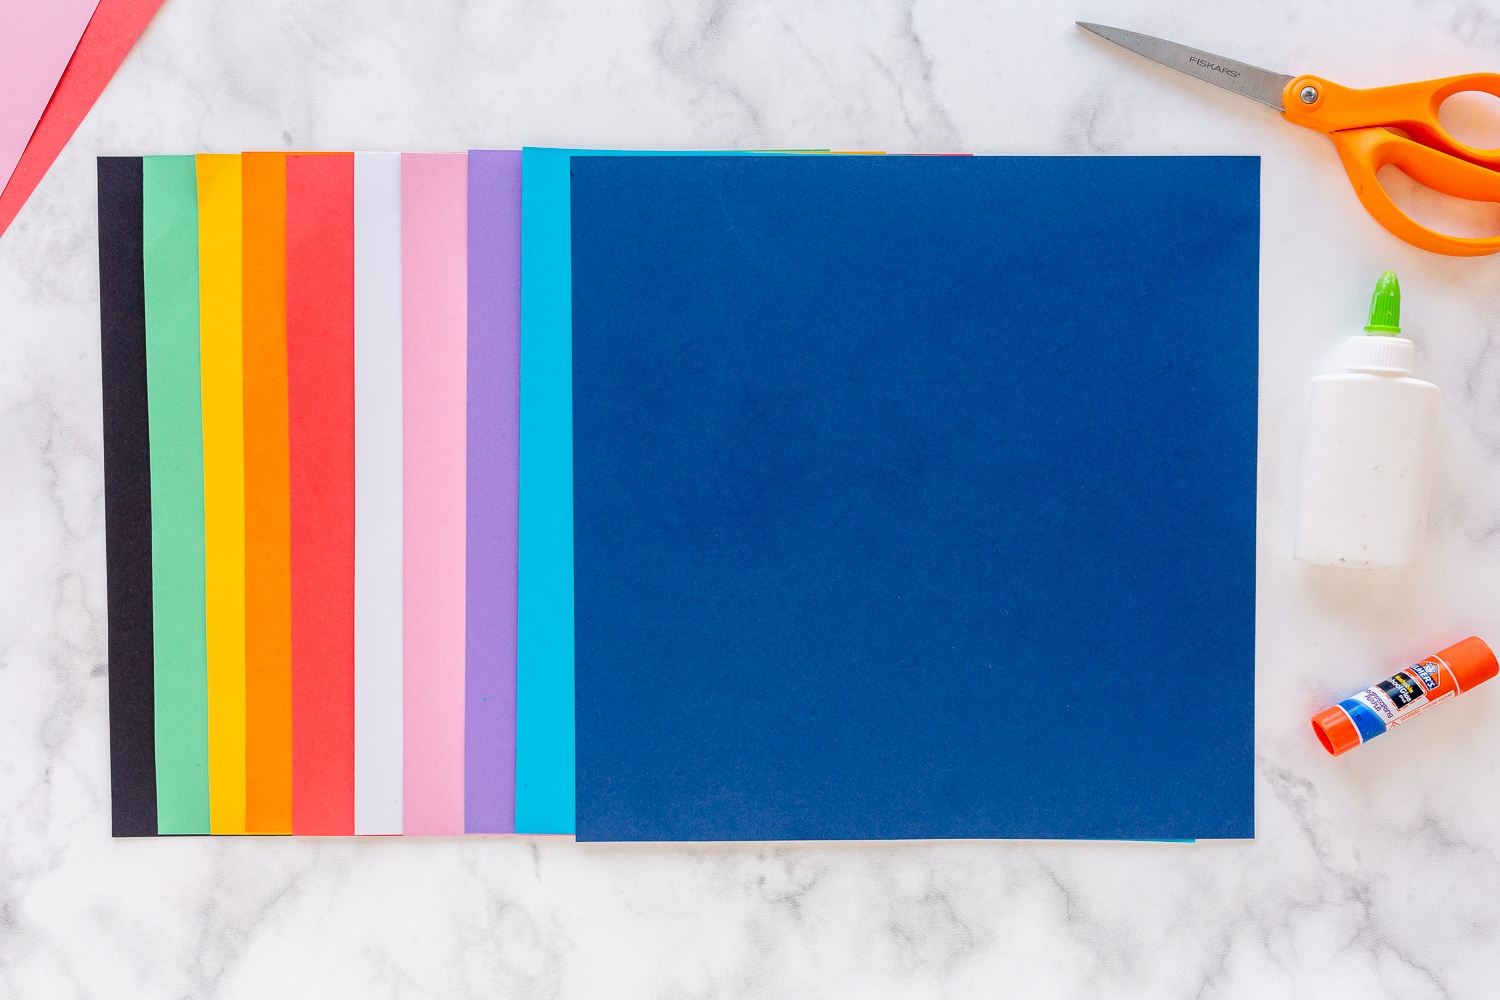 colorful card stock paper